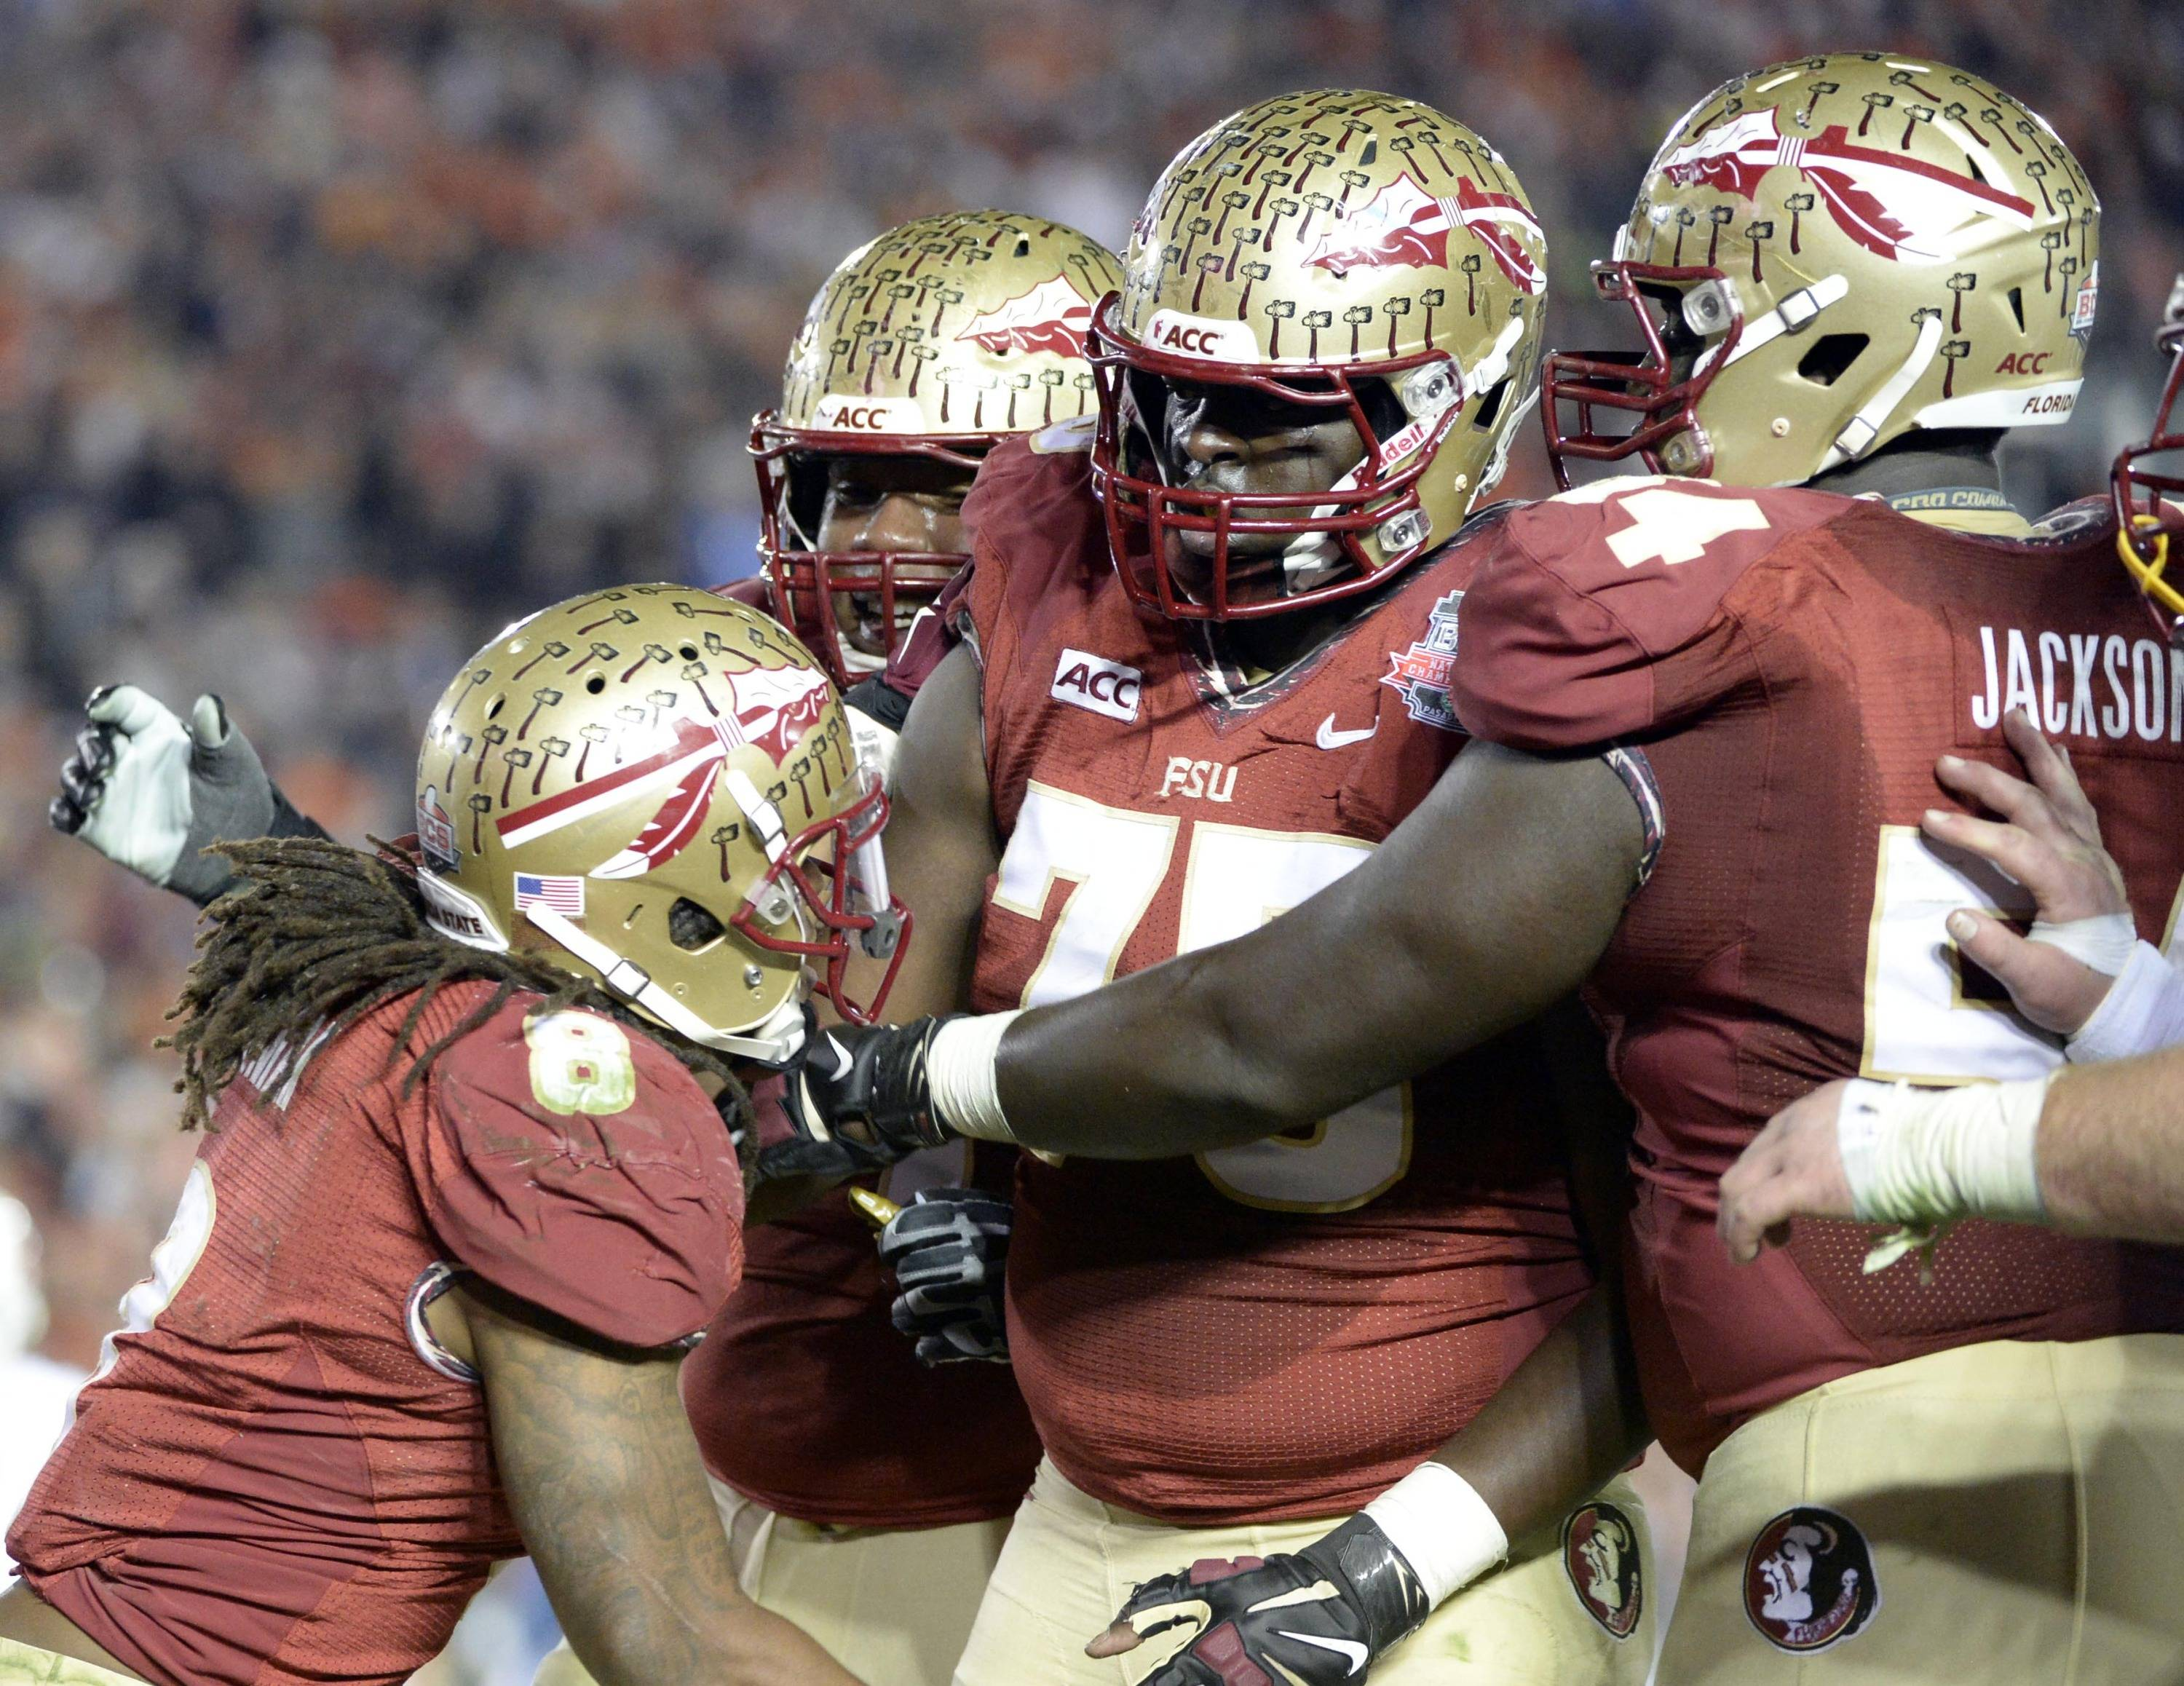 Jan 6, 2014; Pasadena, CA, USA; Florida State Seminoles running back Devonta Freeman (8) and offensive linesman Cameron Erving (75) celebrate the touchdown against the Auburn Tigers during the first half of the 2014 BCS National Championship game at the Rose Bowl.  Mandatory Credit: Richard Mackson-USA TODAY Sports